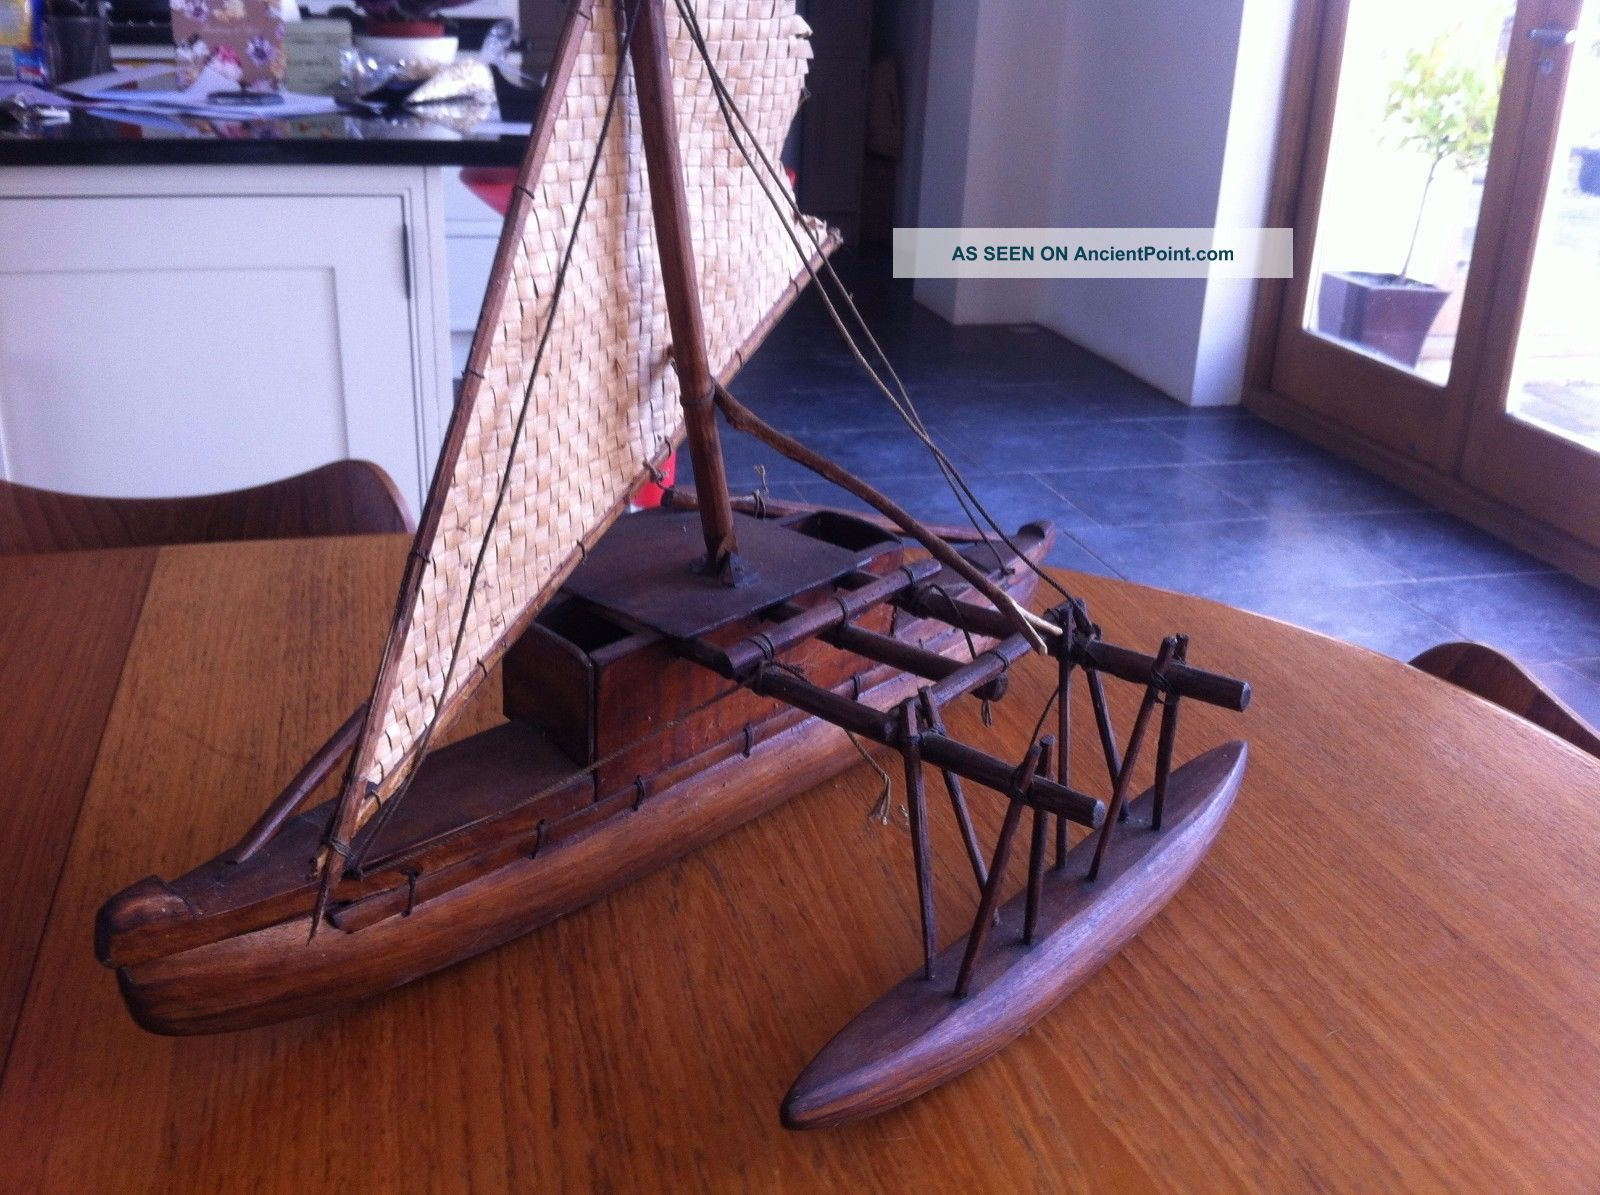 Fijian Wooden Outrigger Boat Model Hand Carved Vintage Ethnic Pacific Islands & Oceania photo